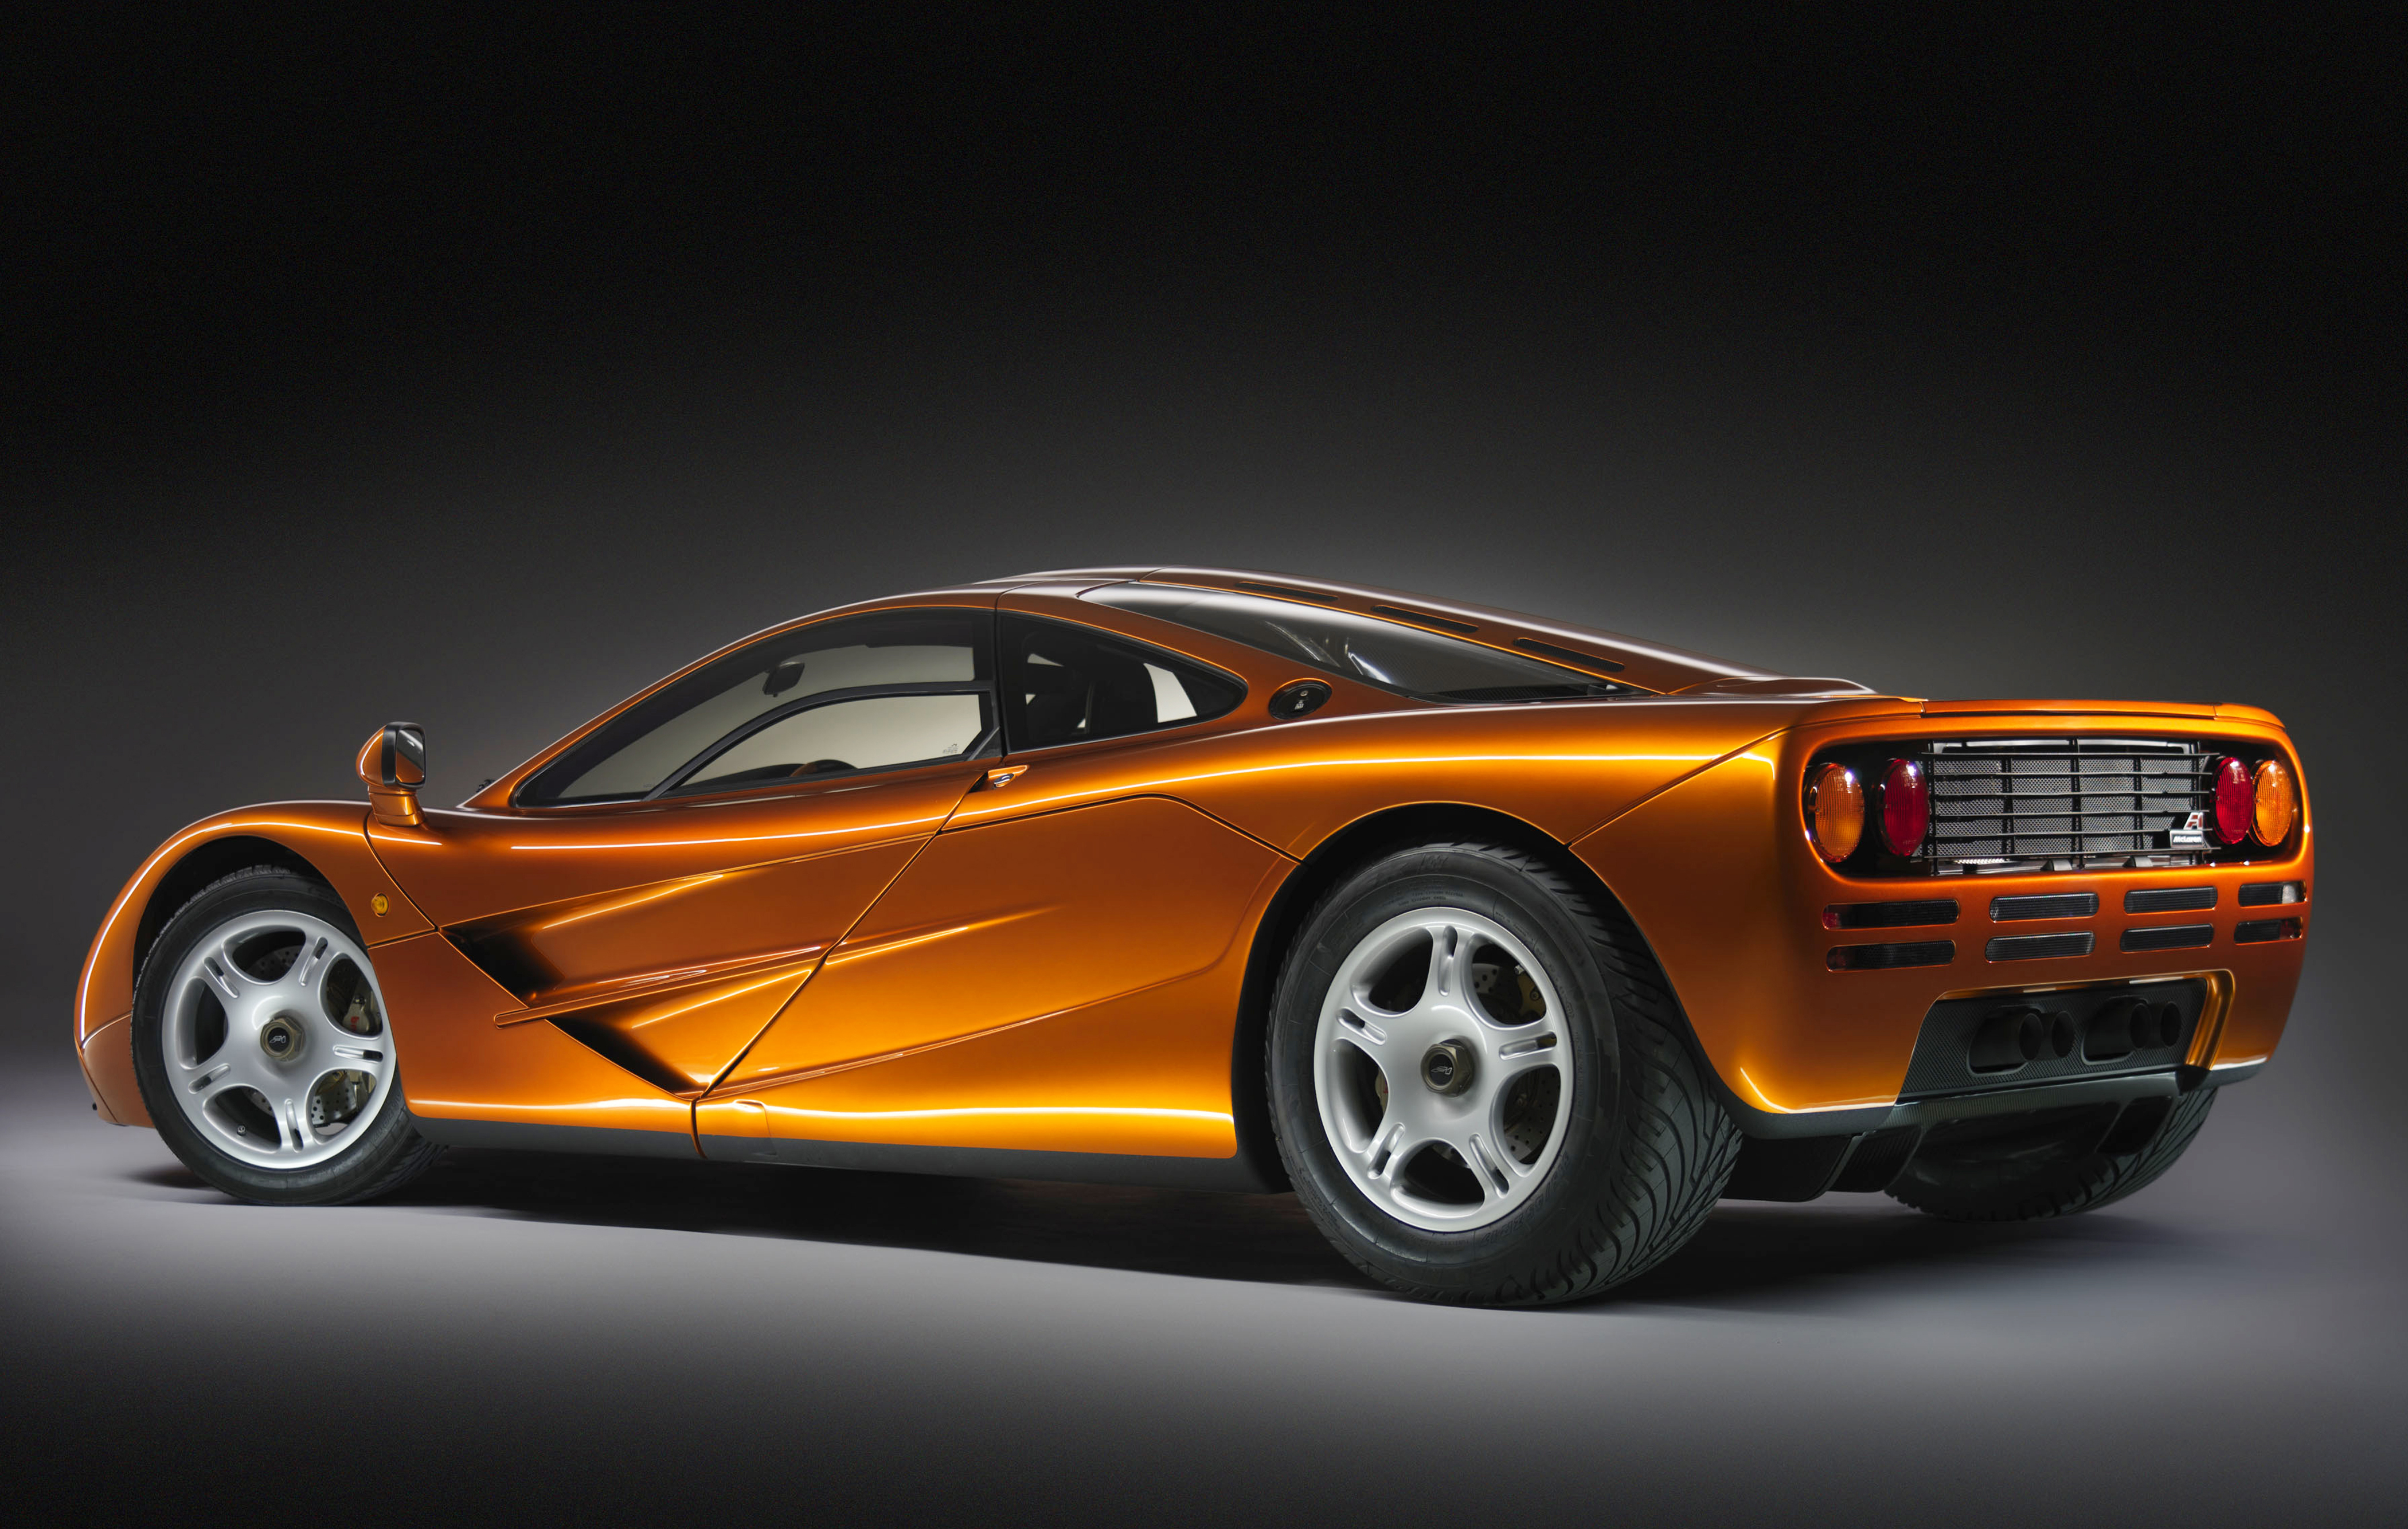 McLaren F1 orange Side studio